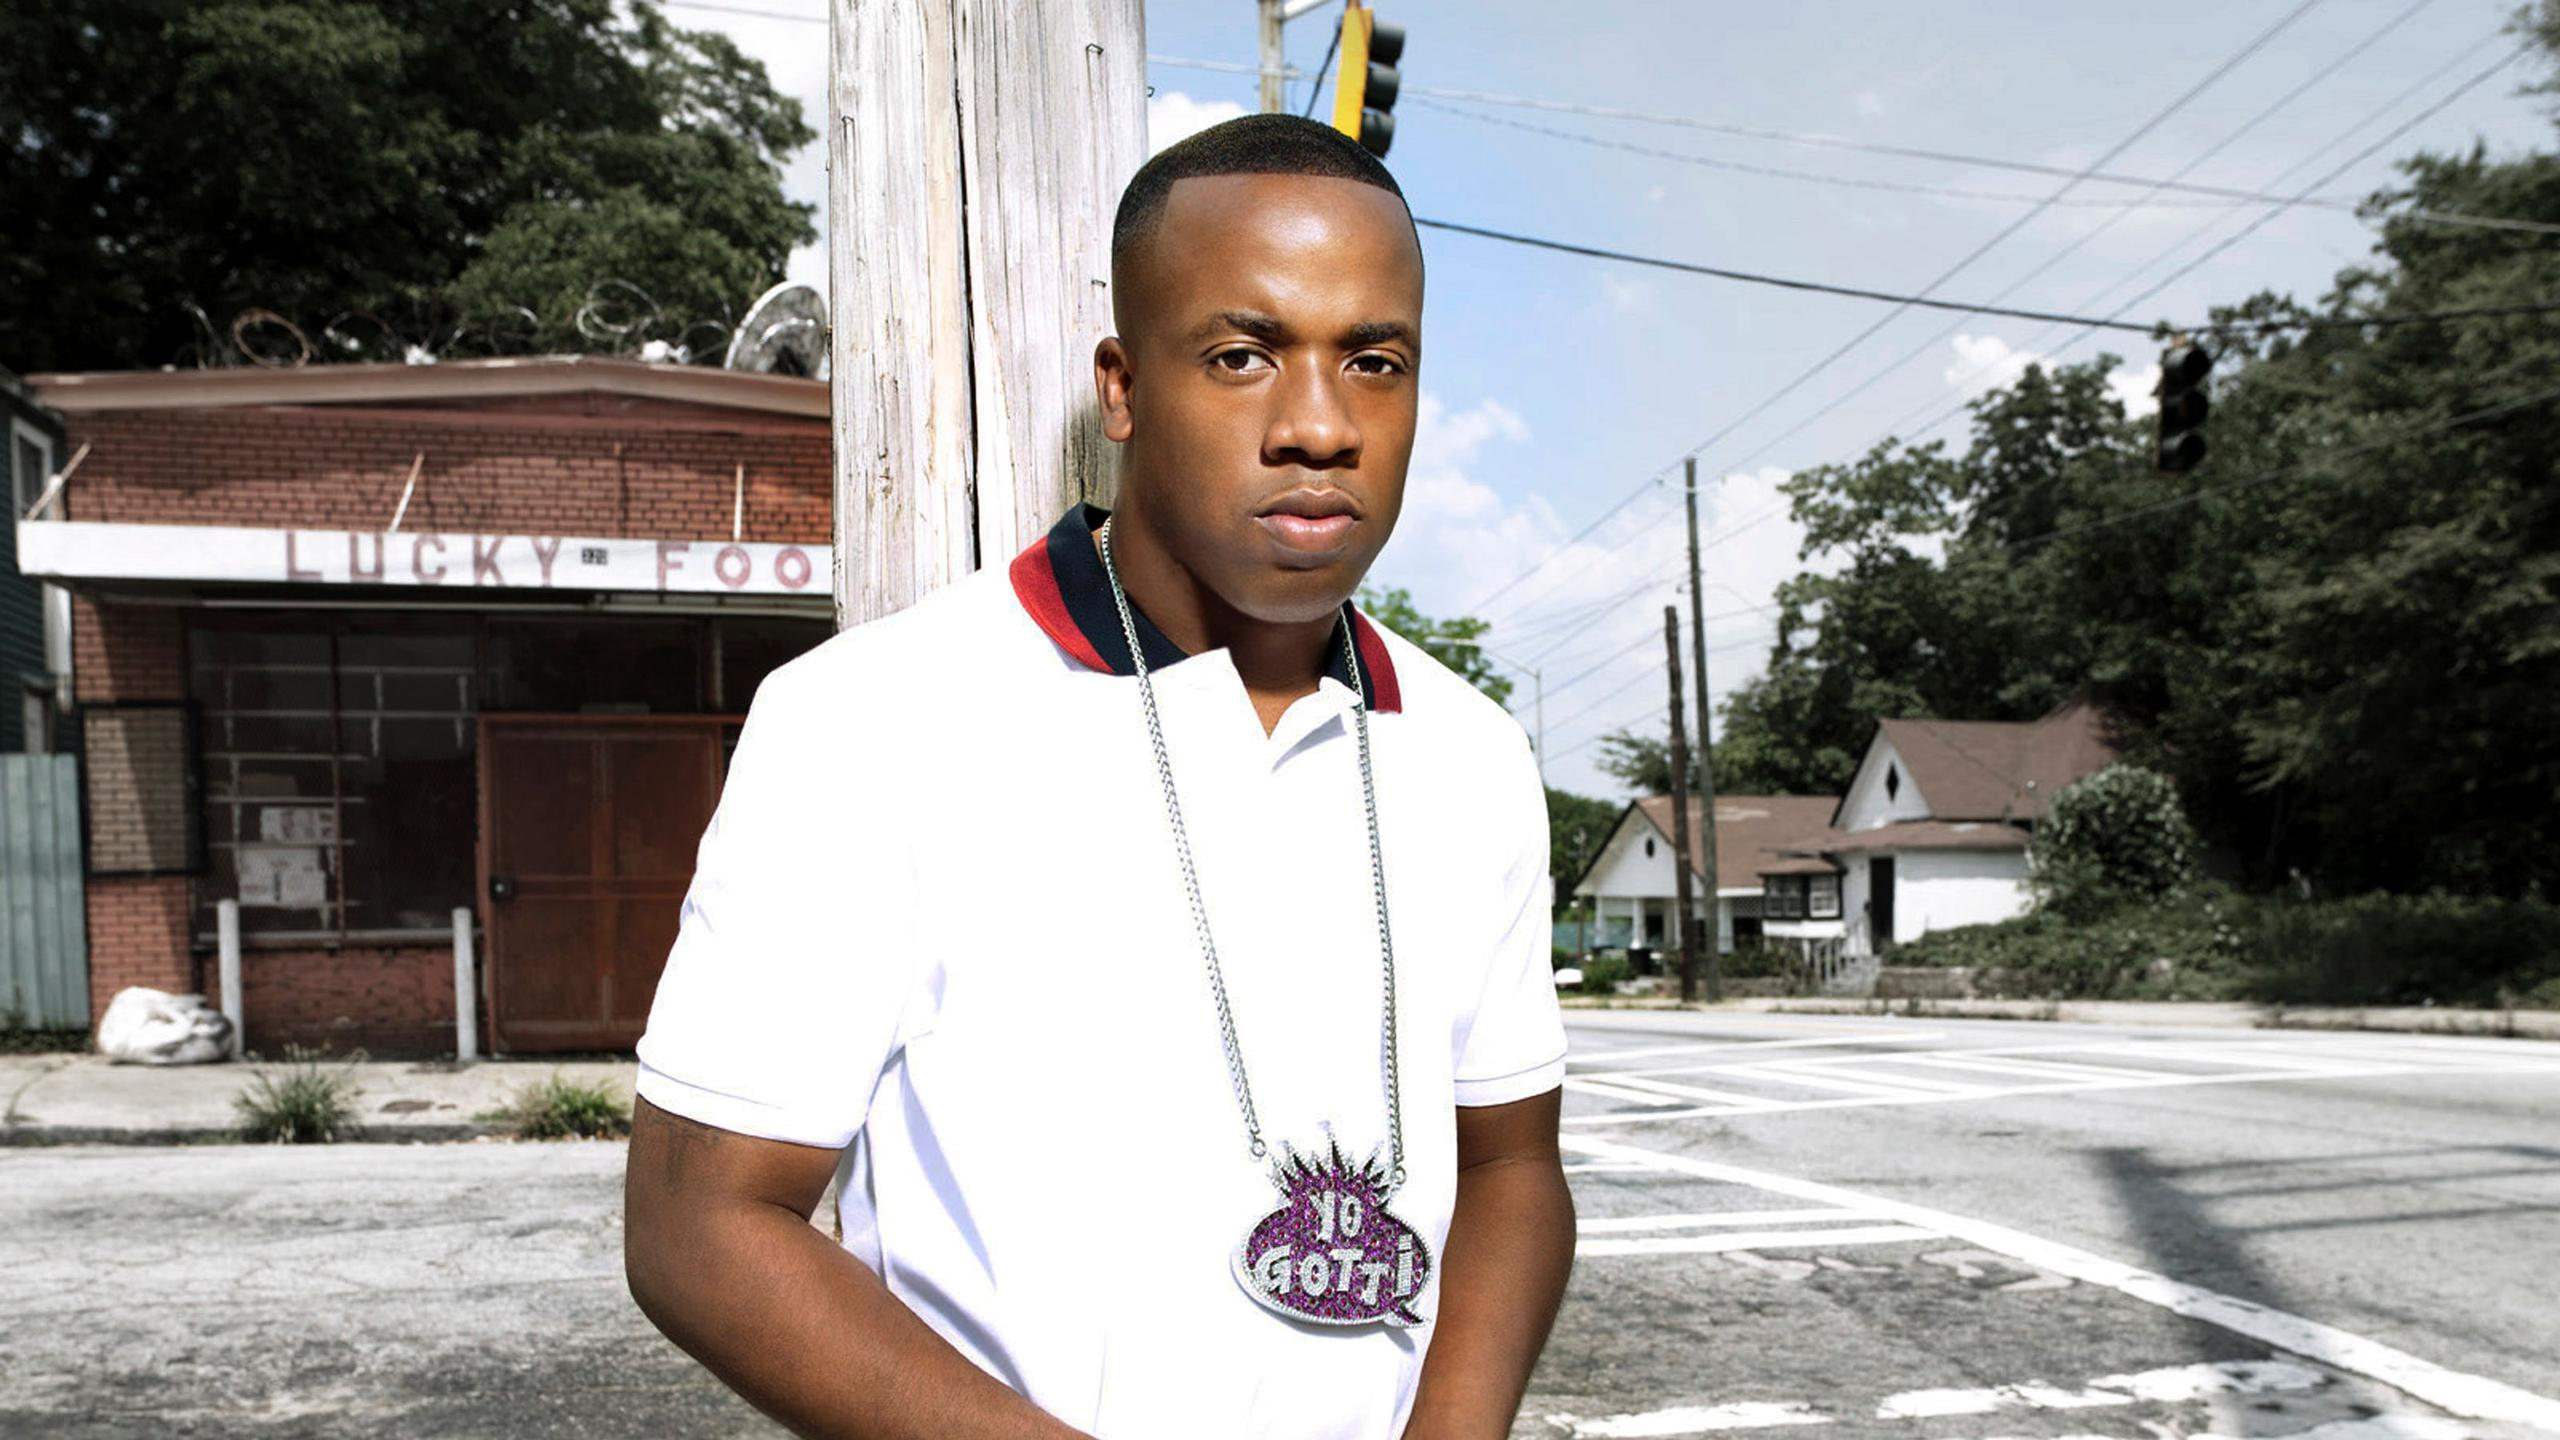 Yo Gotti Tour 2020 Yo Gotti tour dates 2019 2020. Yo Gotti tickets and concerts